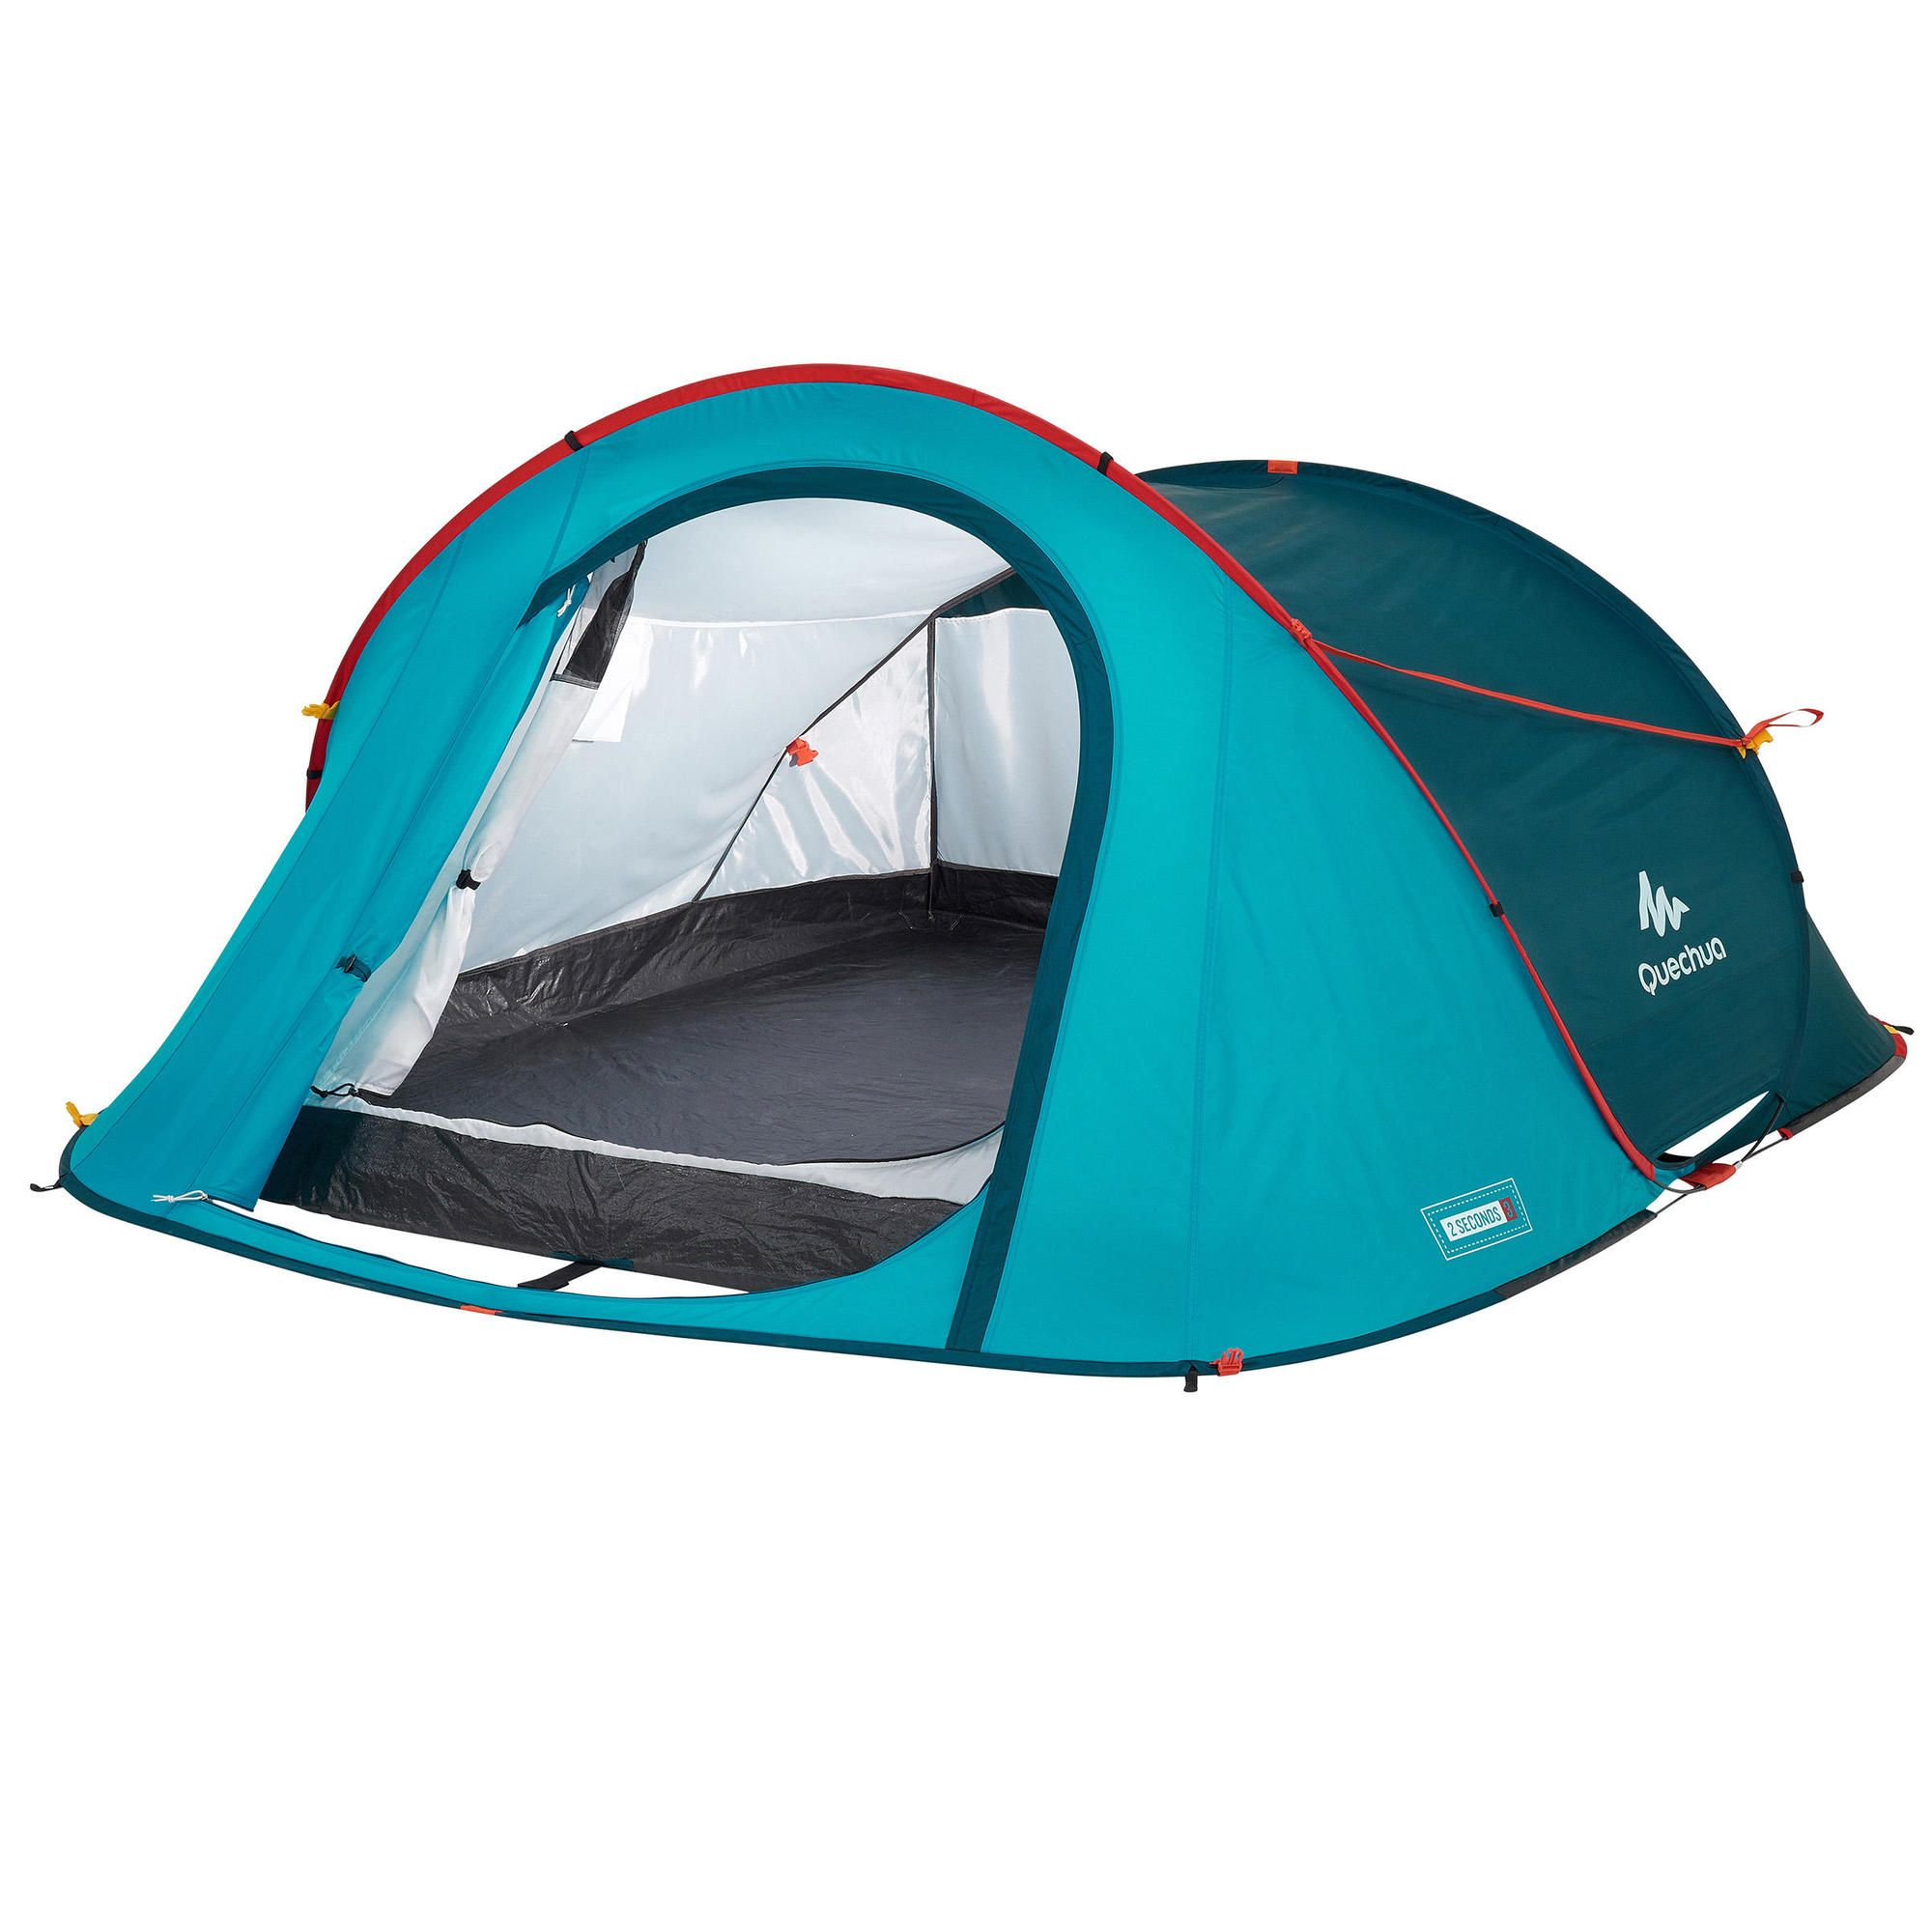 Quechua 2 Second Waterproof Camping Tent 3 Person Backpacking Tent Pop Up Camping Tent Tent